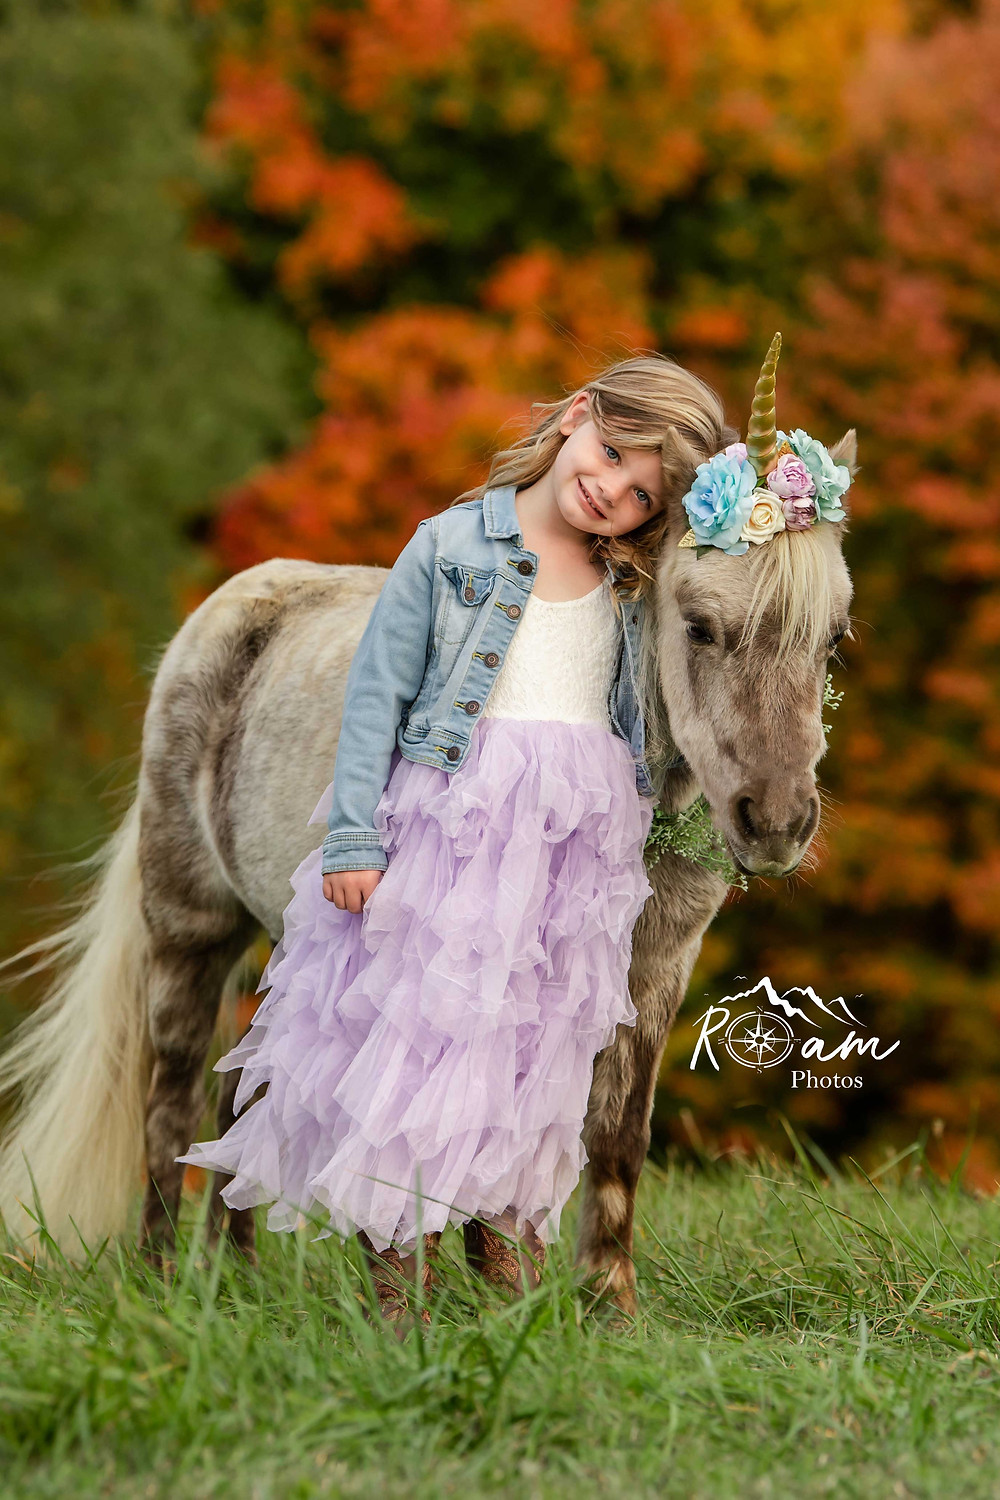 Little girl leaning on a pony unicorn